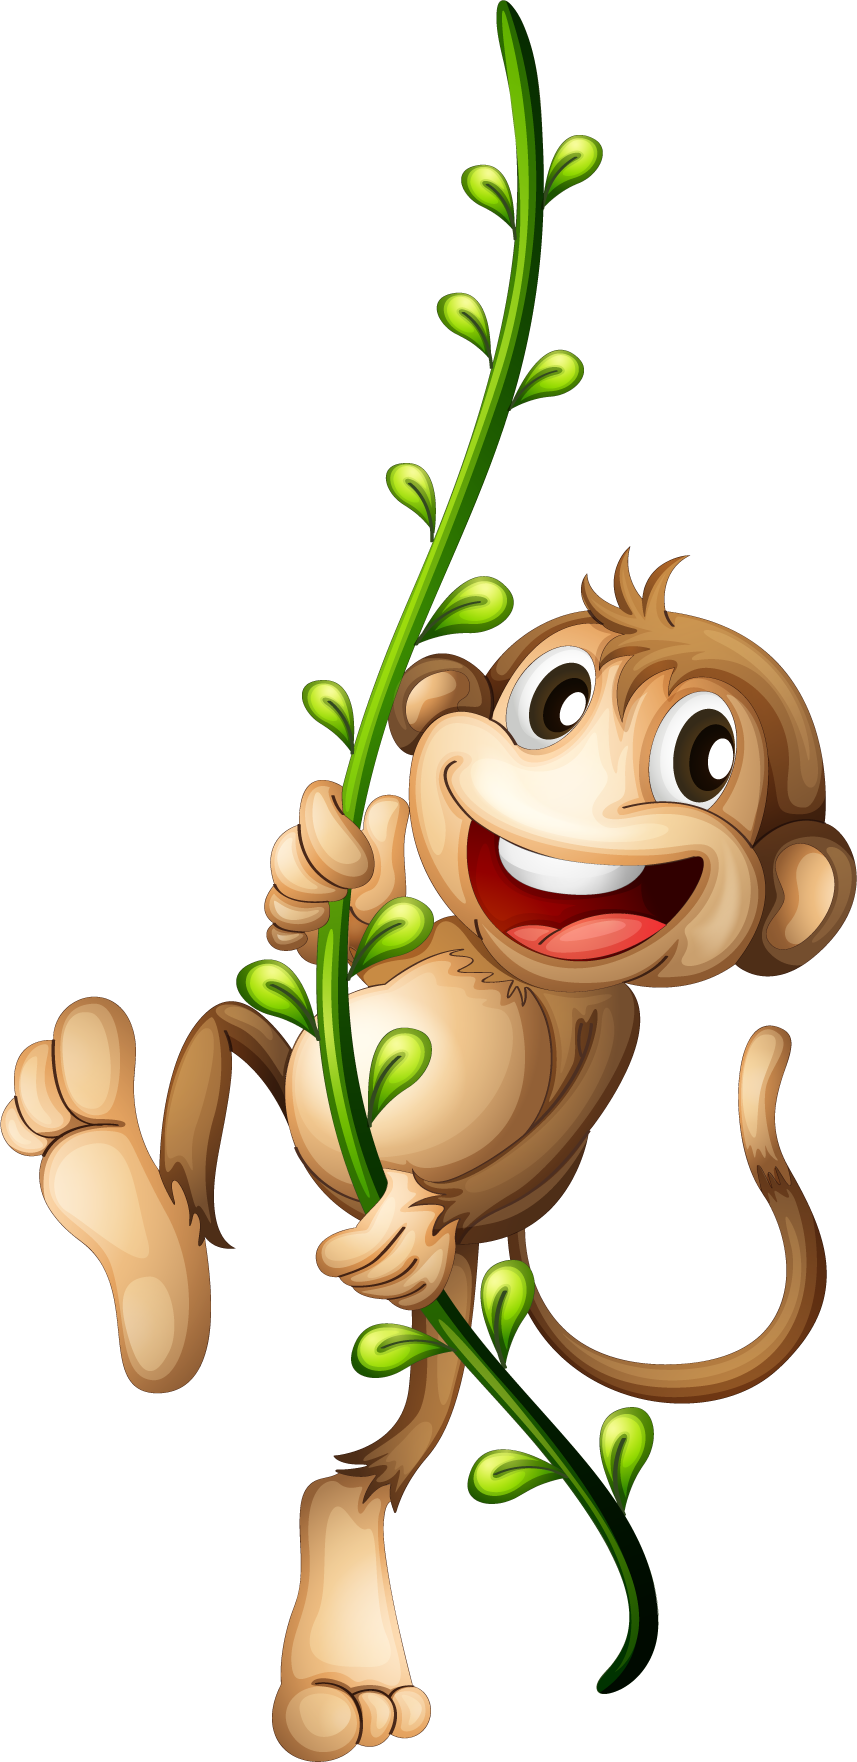 Cartoon monkey png. Transparent free images only